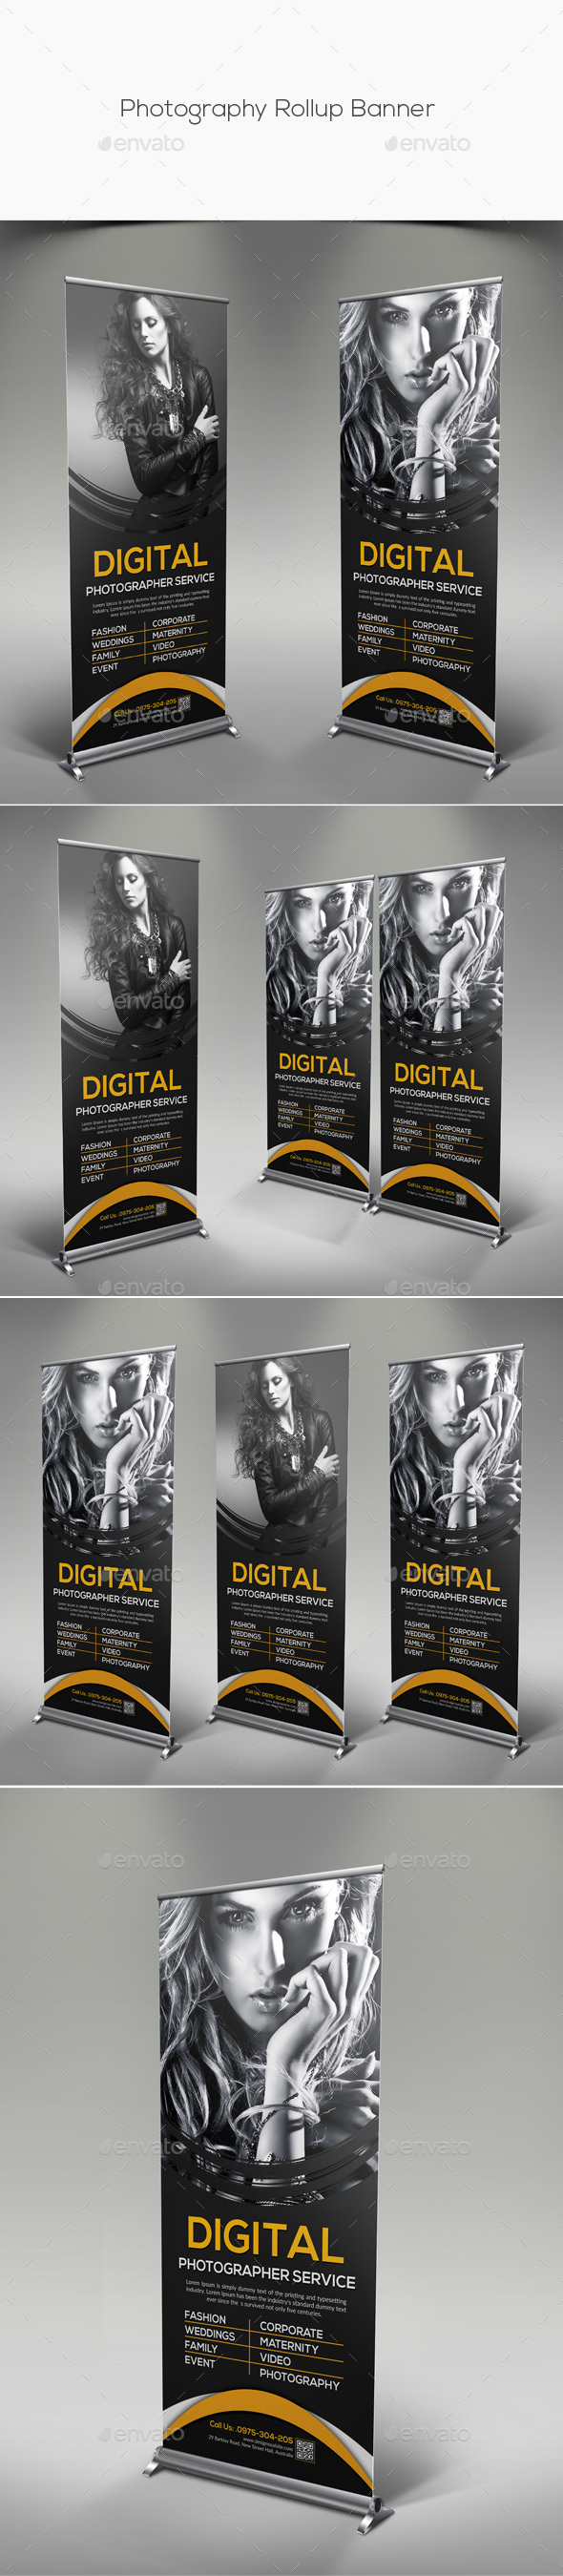 Photography Rollup Banner - Signage Print Templates